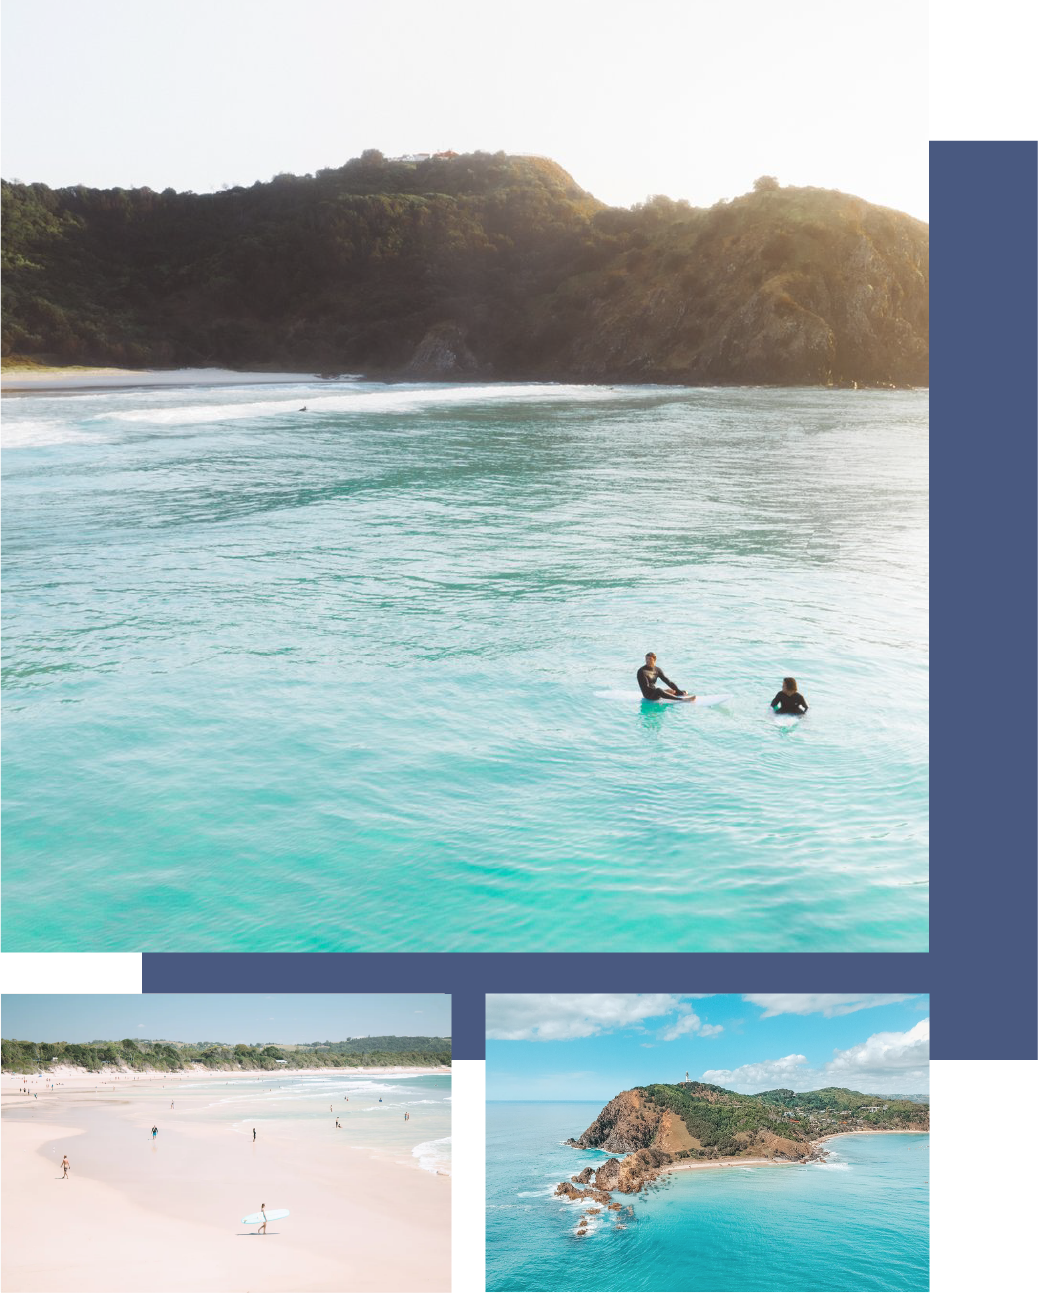 BEACHES - Whether you're heading to Tweed Heads for our FTL event, about to head up north on vacay or just in the mood for somewhere new, this is our list of must see beaches when you're in the area.- Cabarita Beach- The Pass- Dreamtime Beach- Broken Head- Tallows Beach- Dee-BahIf we had to choose, Broken Head is our fave. Only a 10-minute drive, south of Byron Bay it is the perfect little spot to explore if you're looking to escape the crowds and enjoy some untouched beaches.Images by @saxonkent and @photography_byron_bay